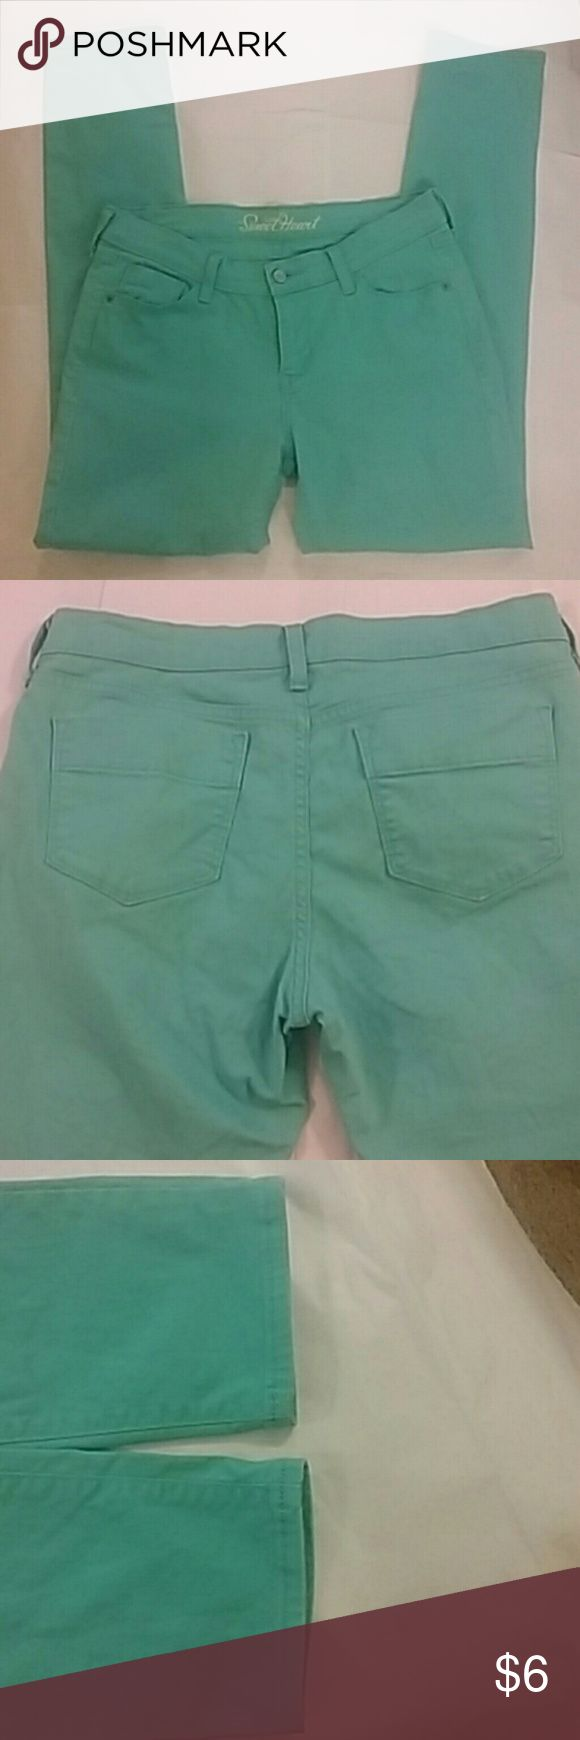 Old Navy Turquoise Jeans Straight leg Old Navy SweetHeart Turquoise jeans in very good used condition. These jeans have no stains, holes, worn spots, or fraying. Button and zipper work like new. Old Navy Jeans